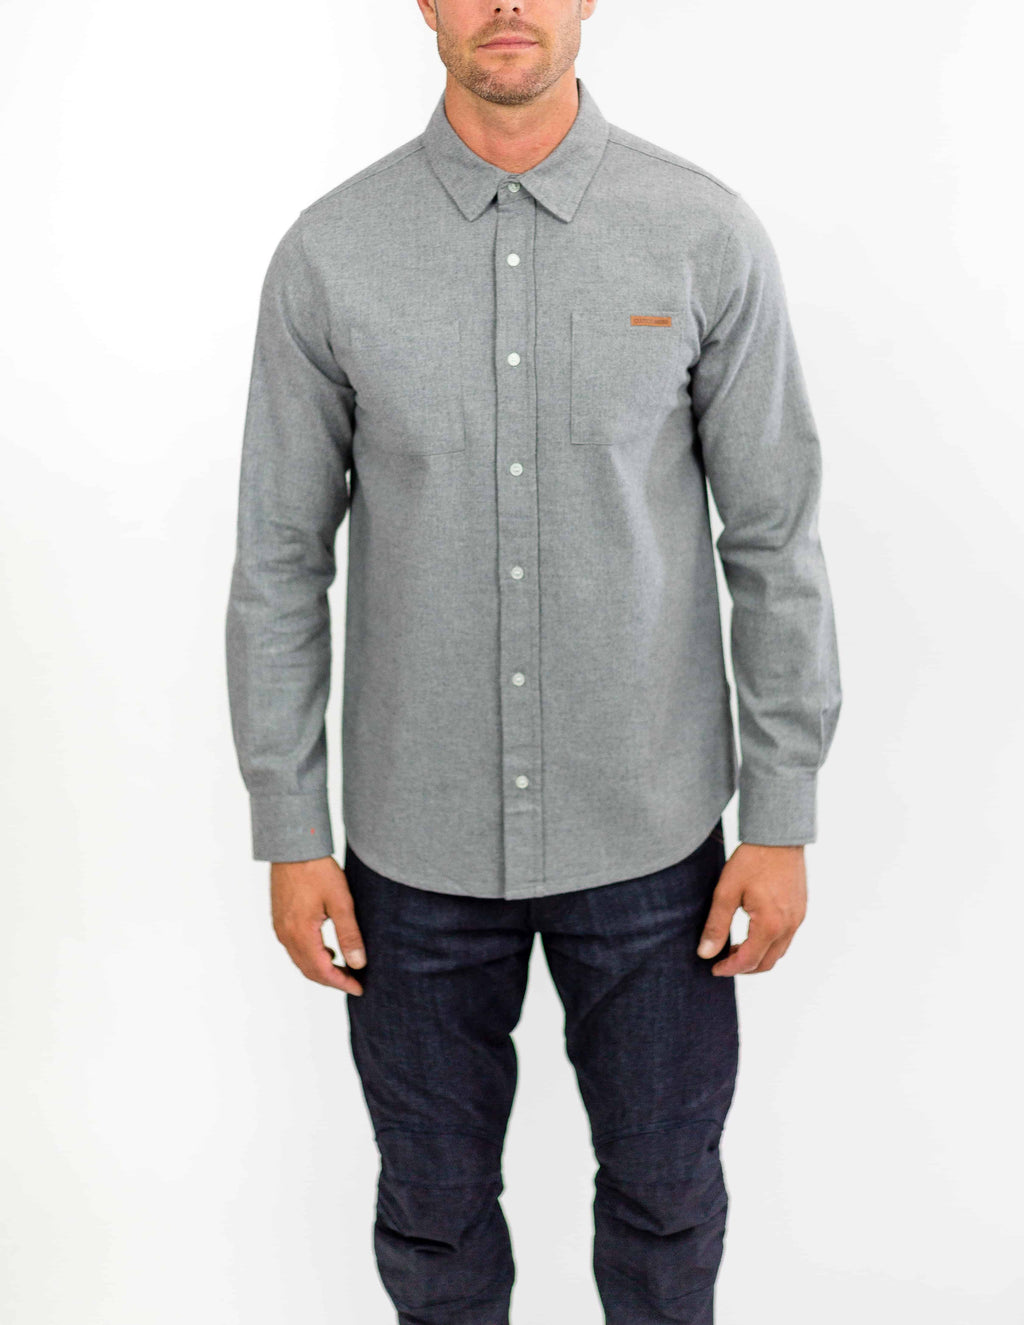 Clutch Moto Ridgemont Rider Shirt